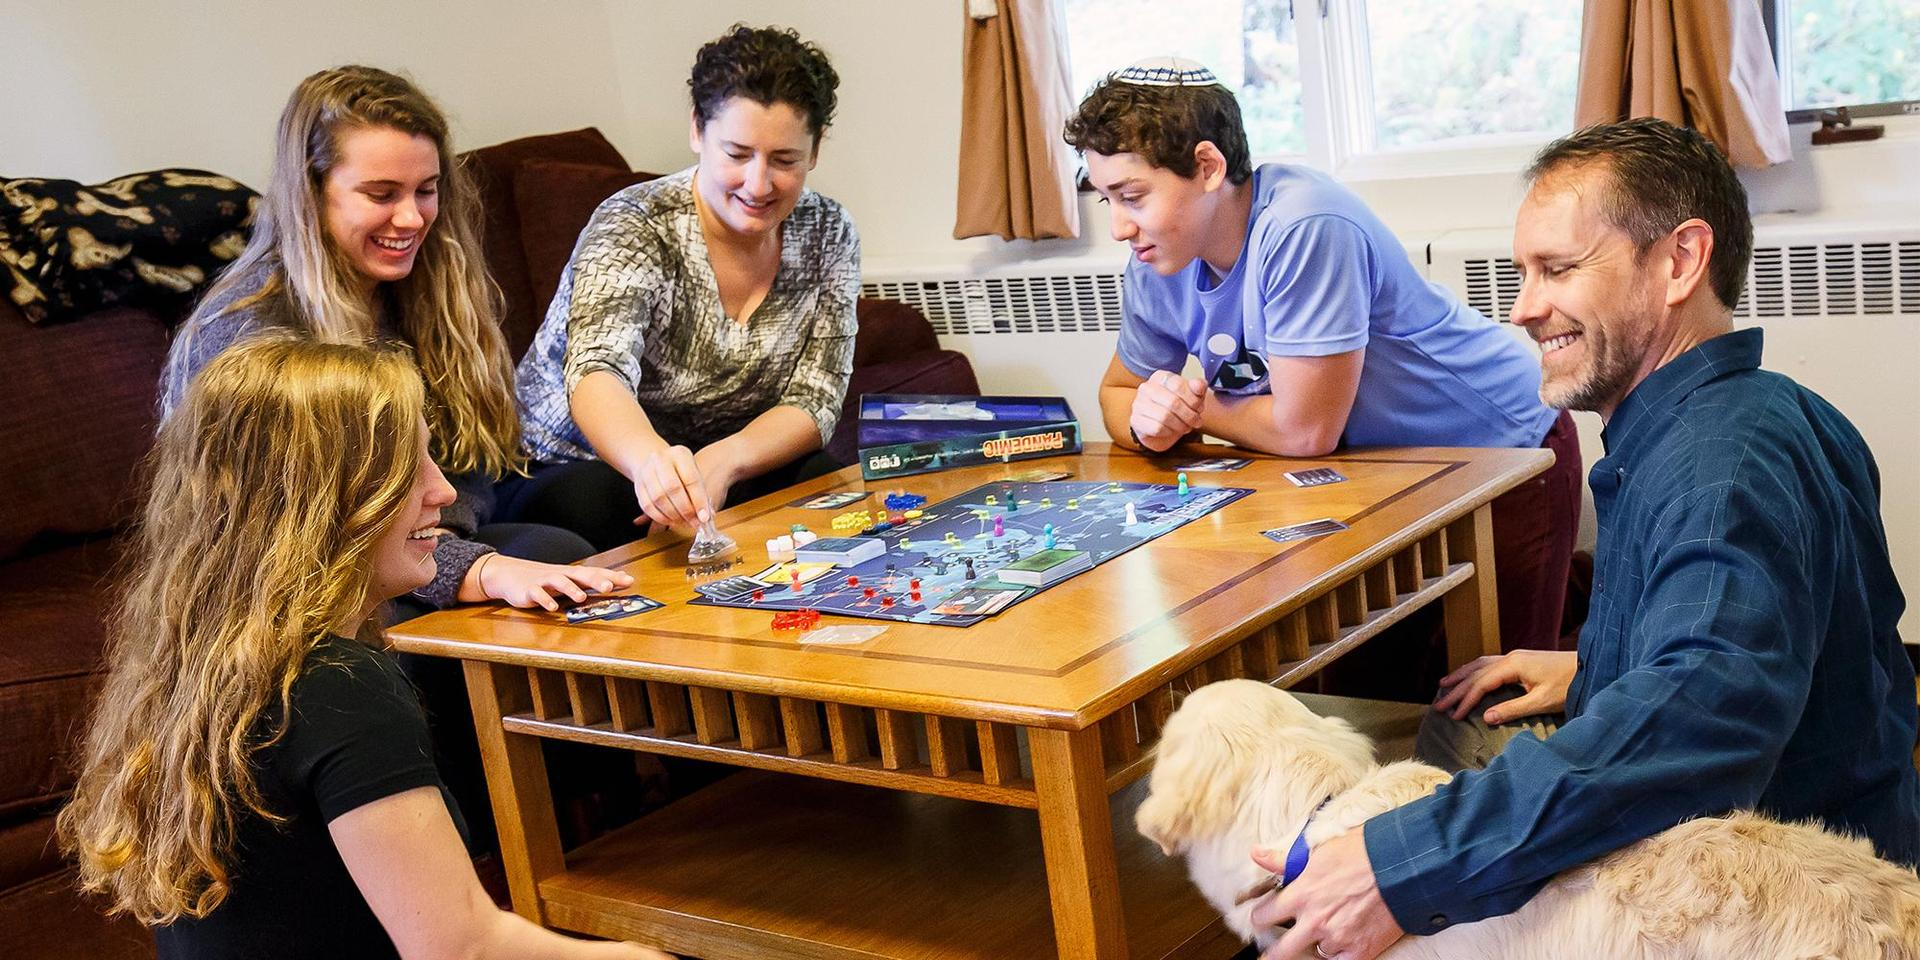 A group of students and adults playing a board game in a dorm.